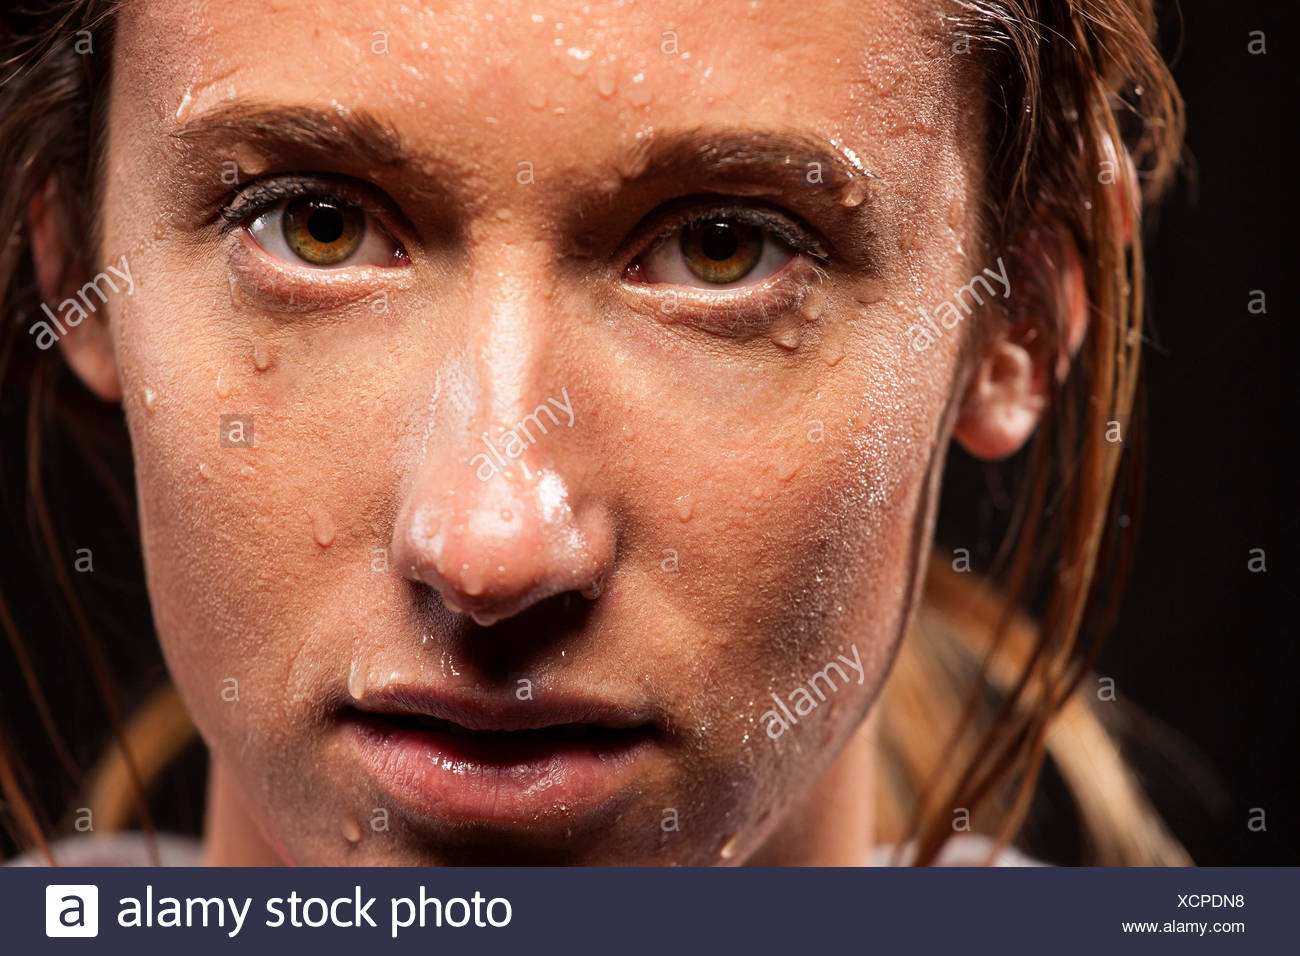 Woman with sweat on face - Stock Image